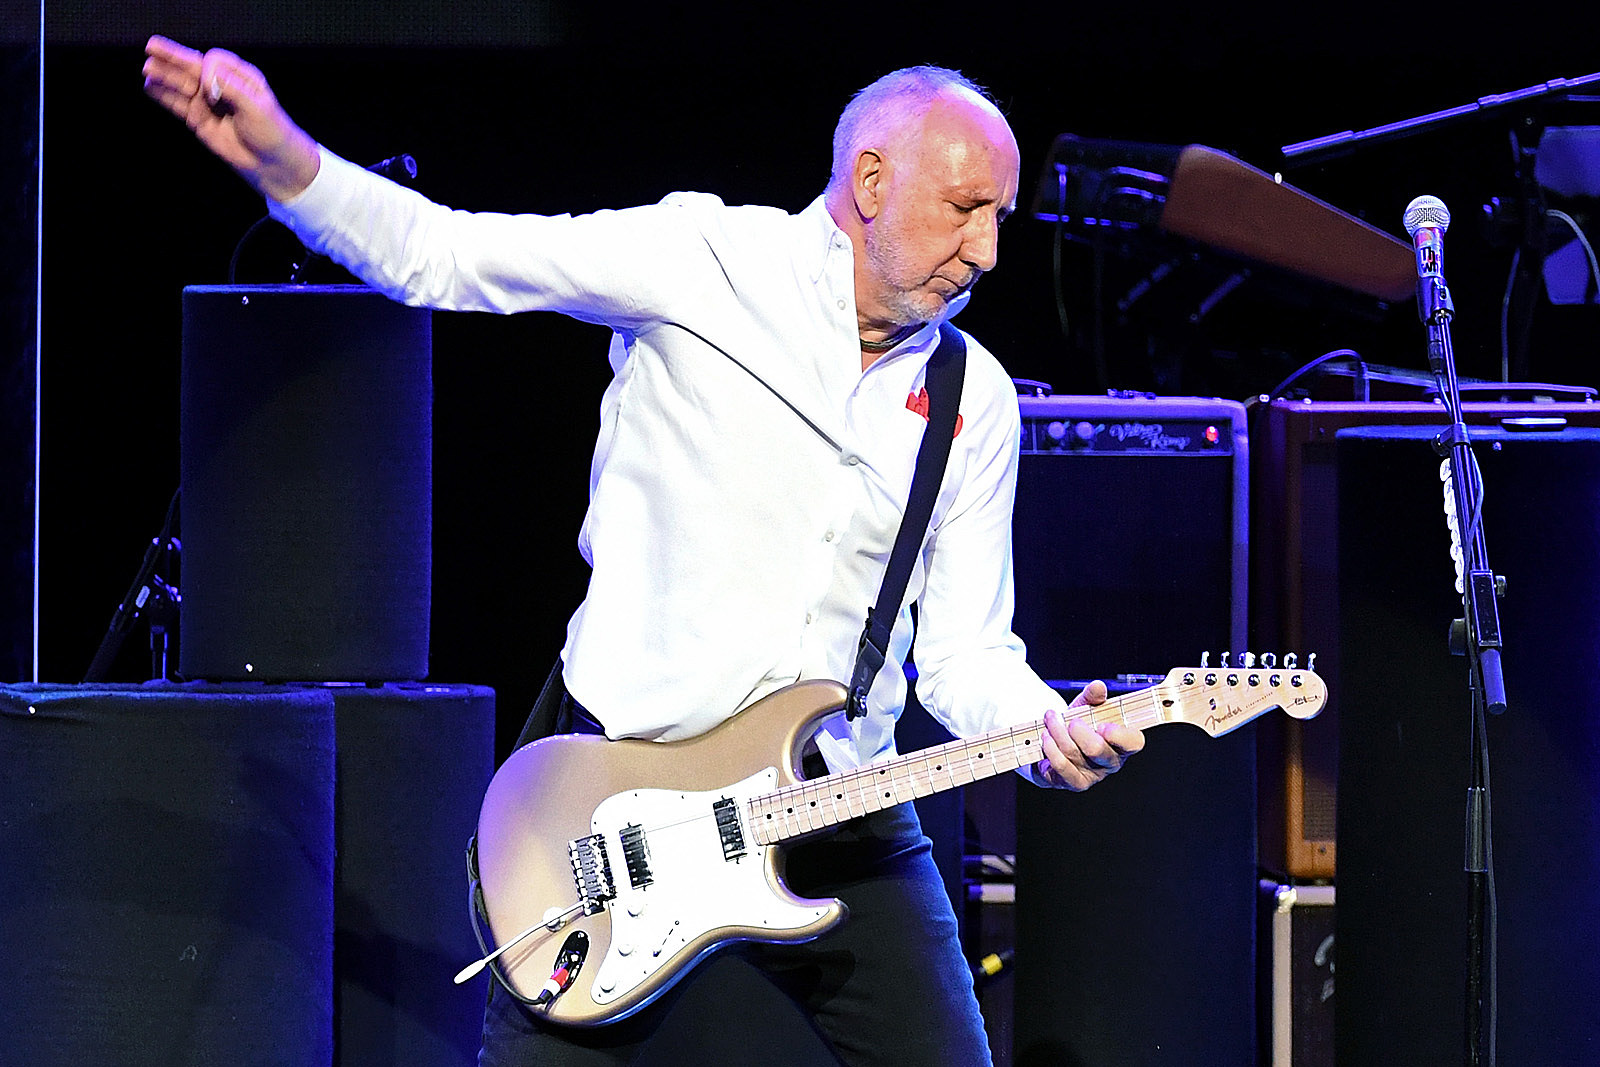 Top 10 Underrated Pete Townshend Songs